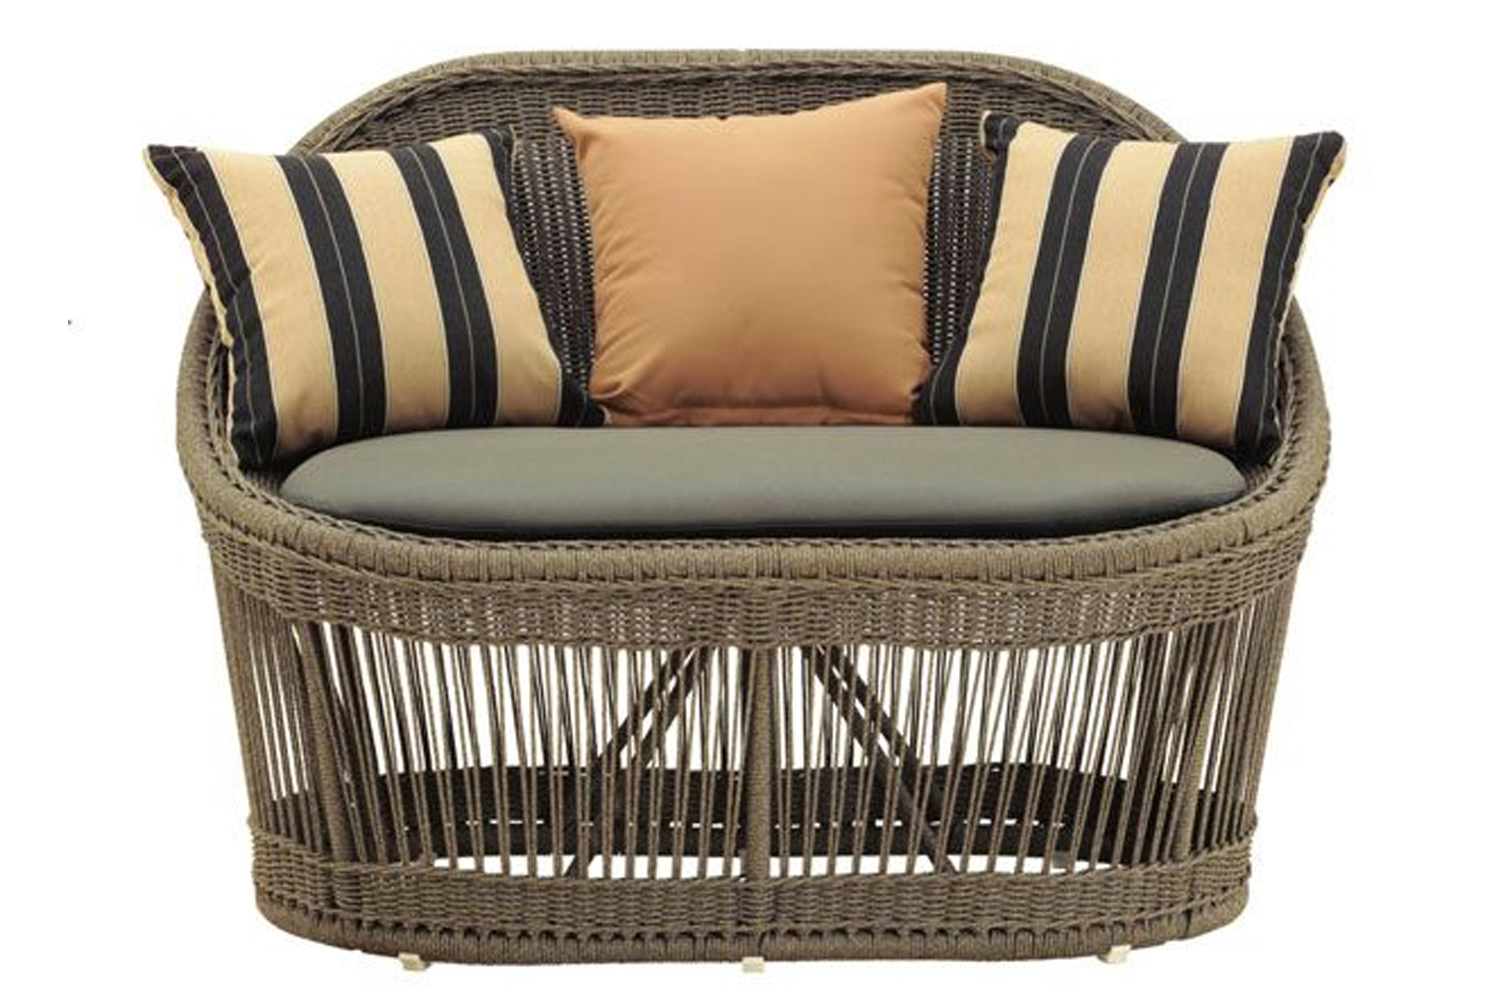 MGBlair introduced the Haven Lute Line, an outdoor furniture line that was inspired by classic design shapes and weaving techniques.